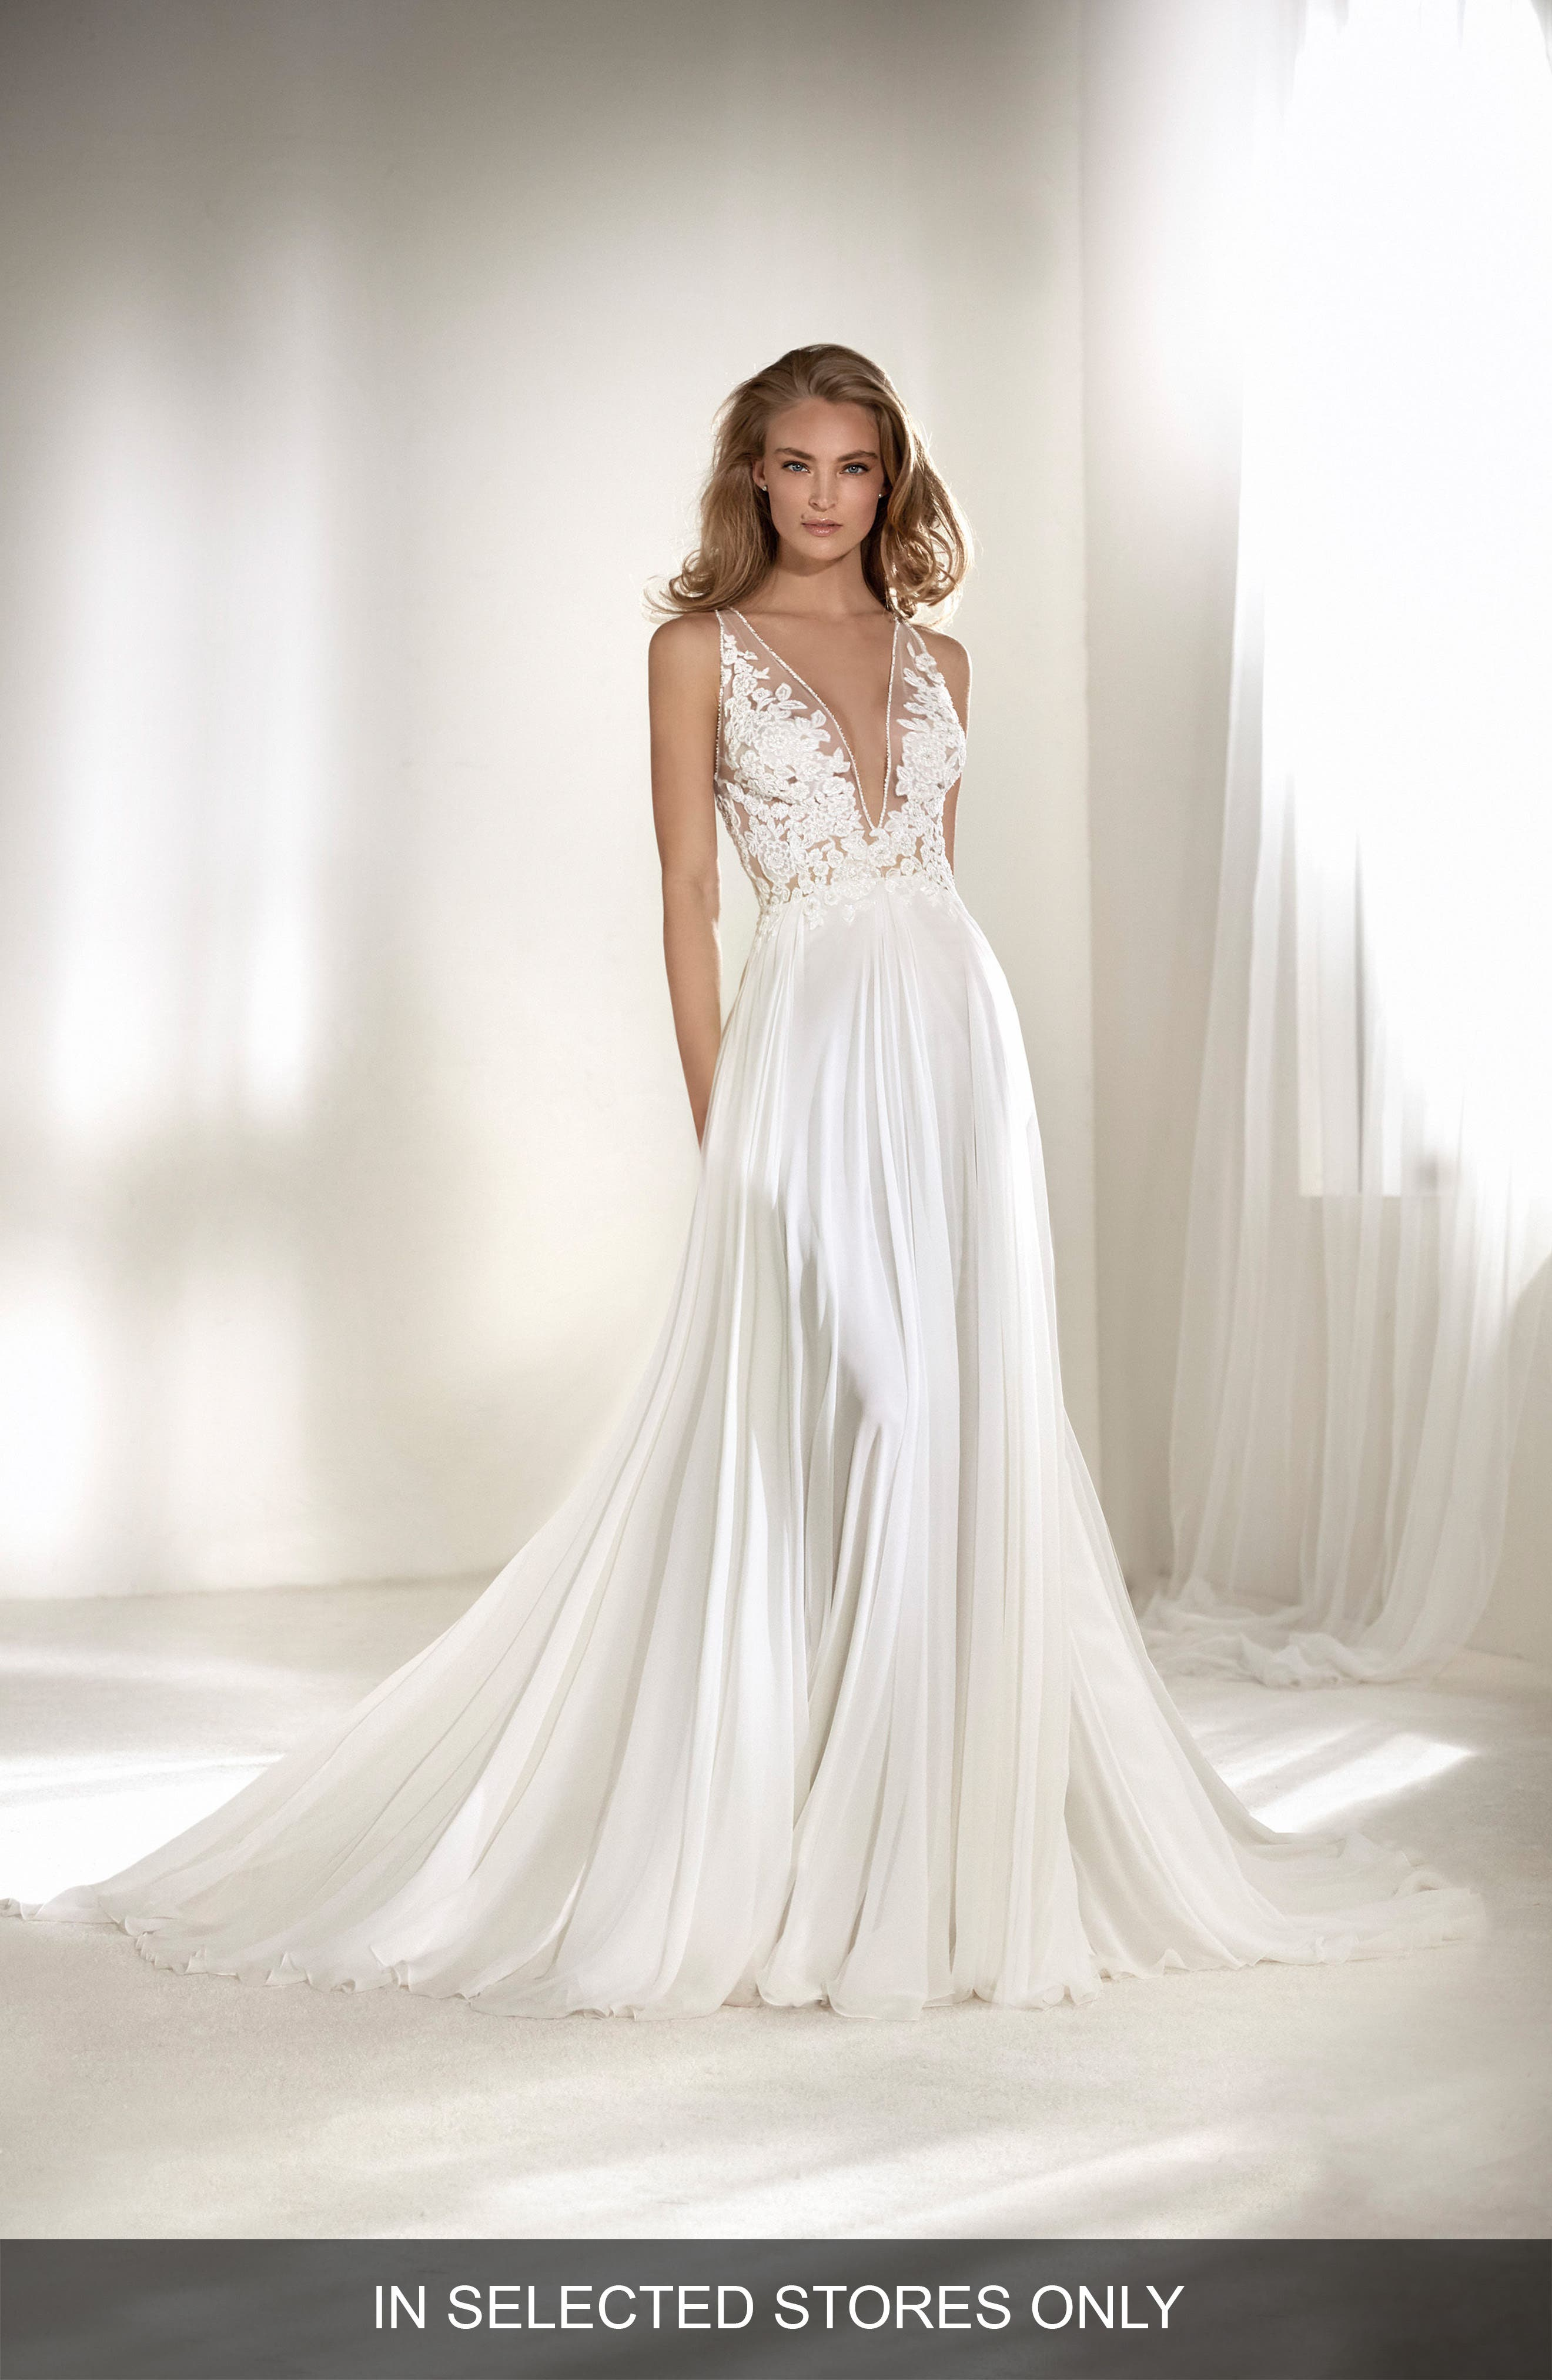 Riado Plunging Lace & Chiffon A-Line Gown,                             Main thumbnail 1, color,                             OFF WHITE